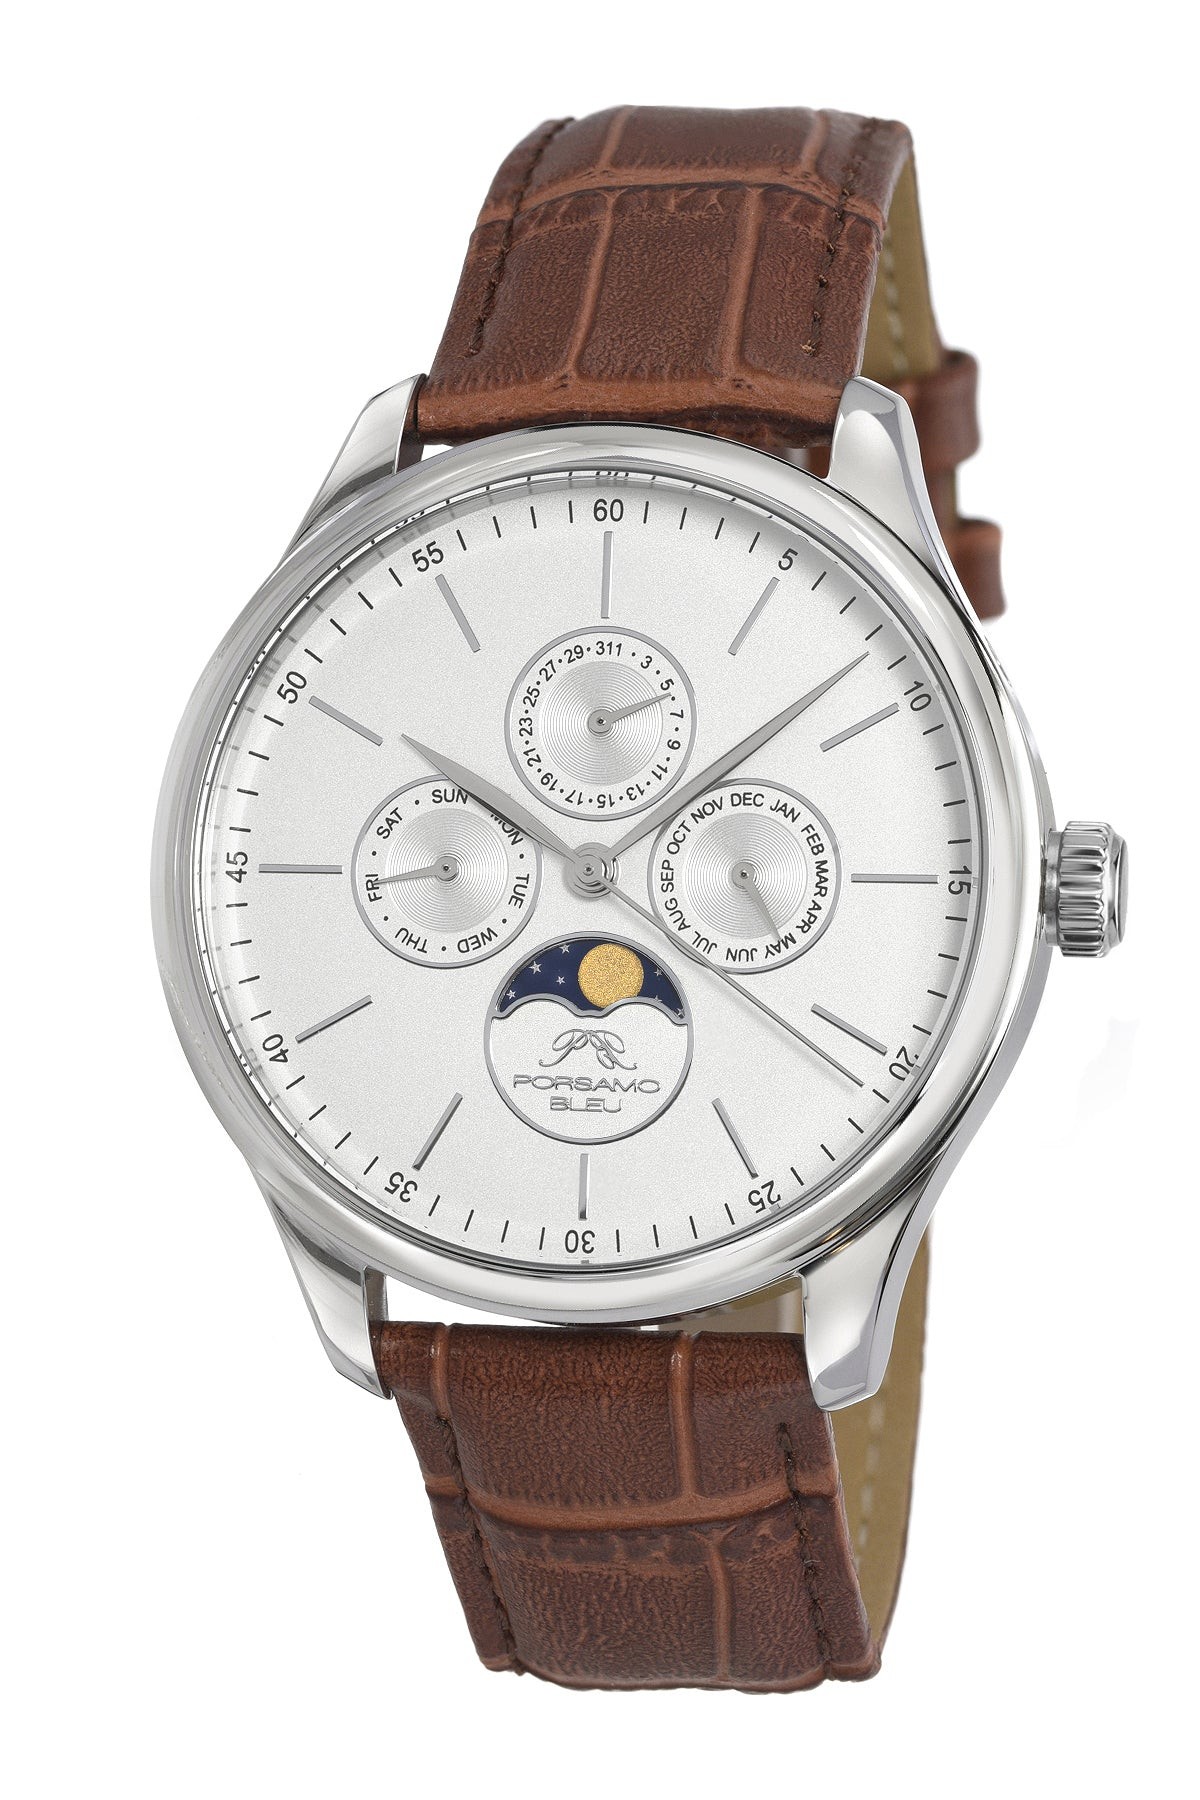 Porsamo Bleu Jonathan luxury men's watch genuine leather band, silver, brown, 911FJOL